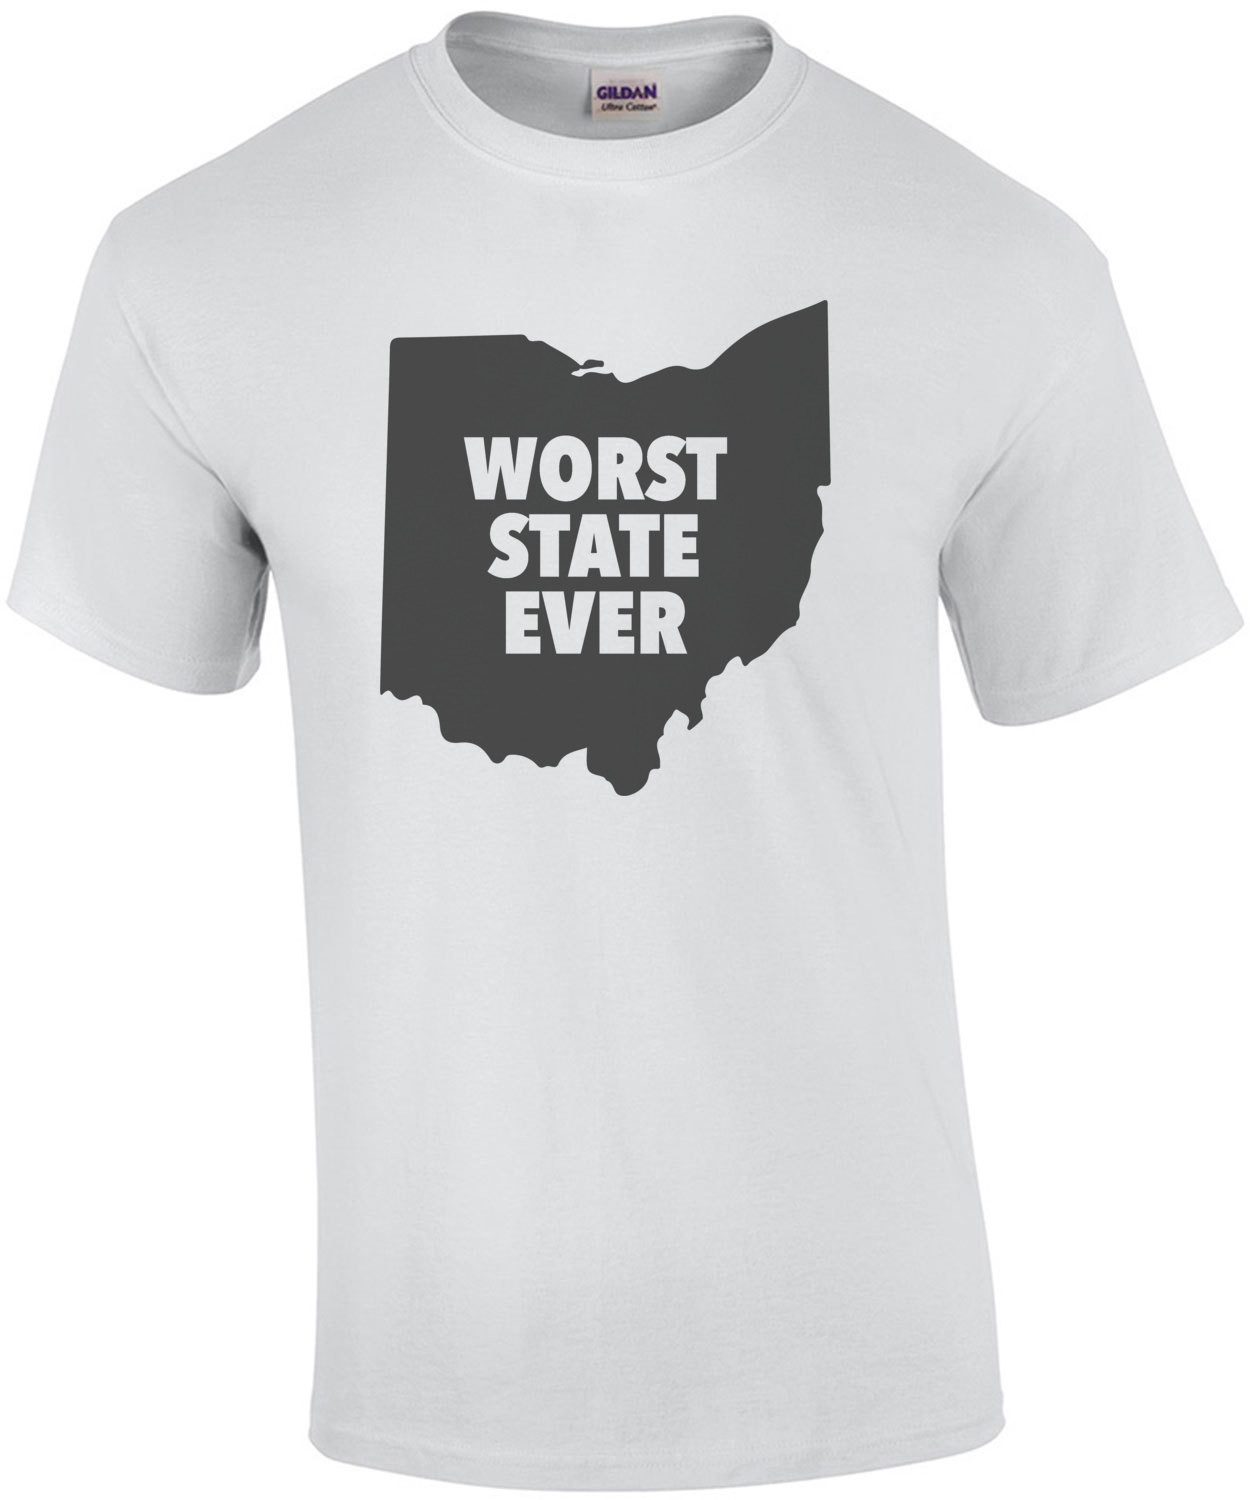 Worst State Ever - Ohio T-Shirt